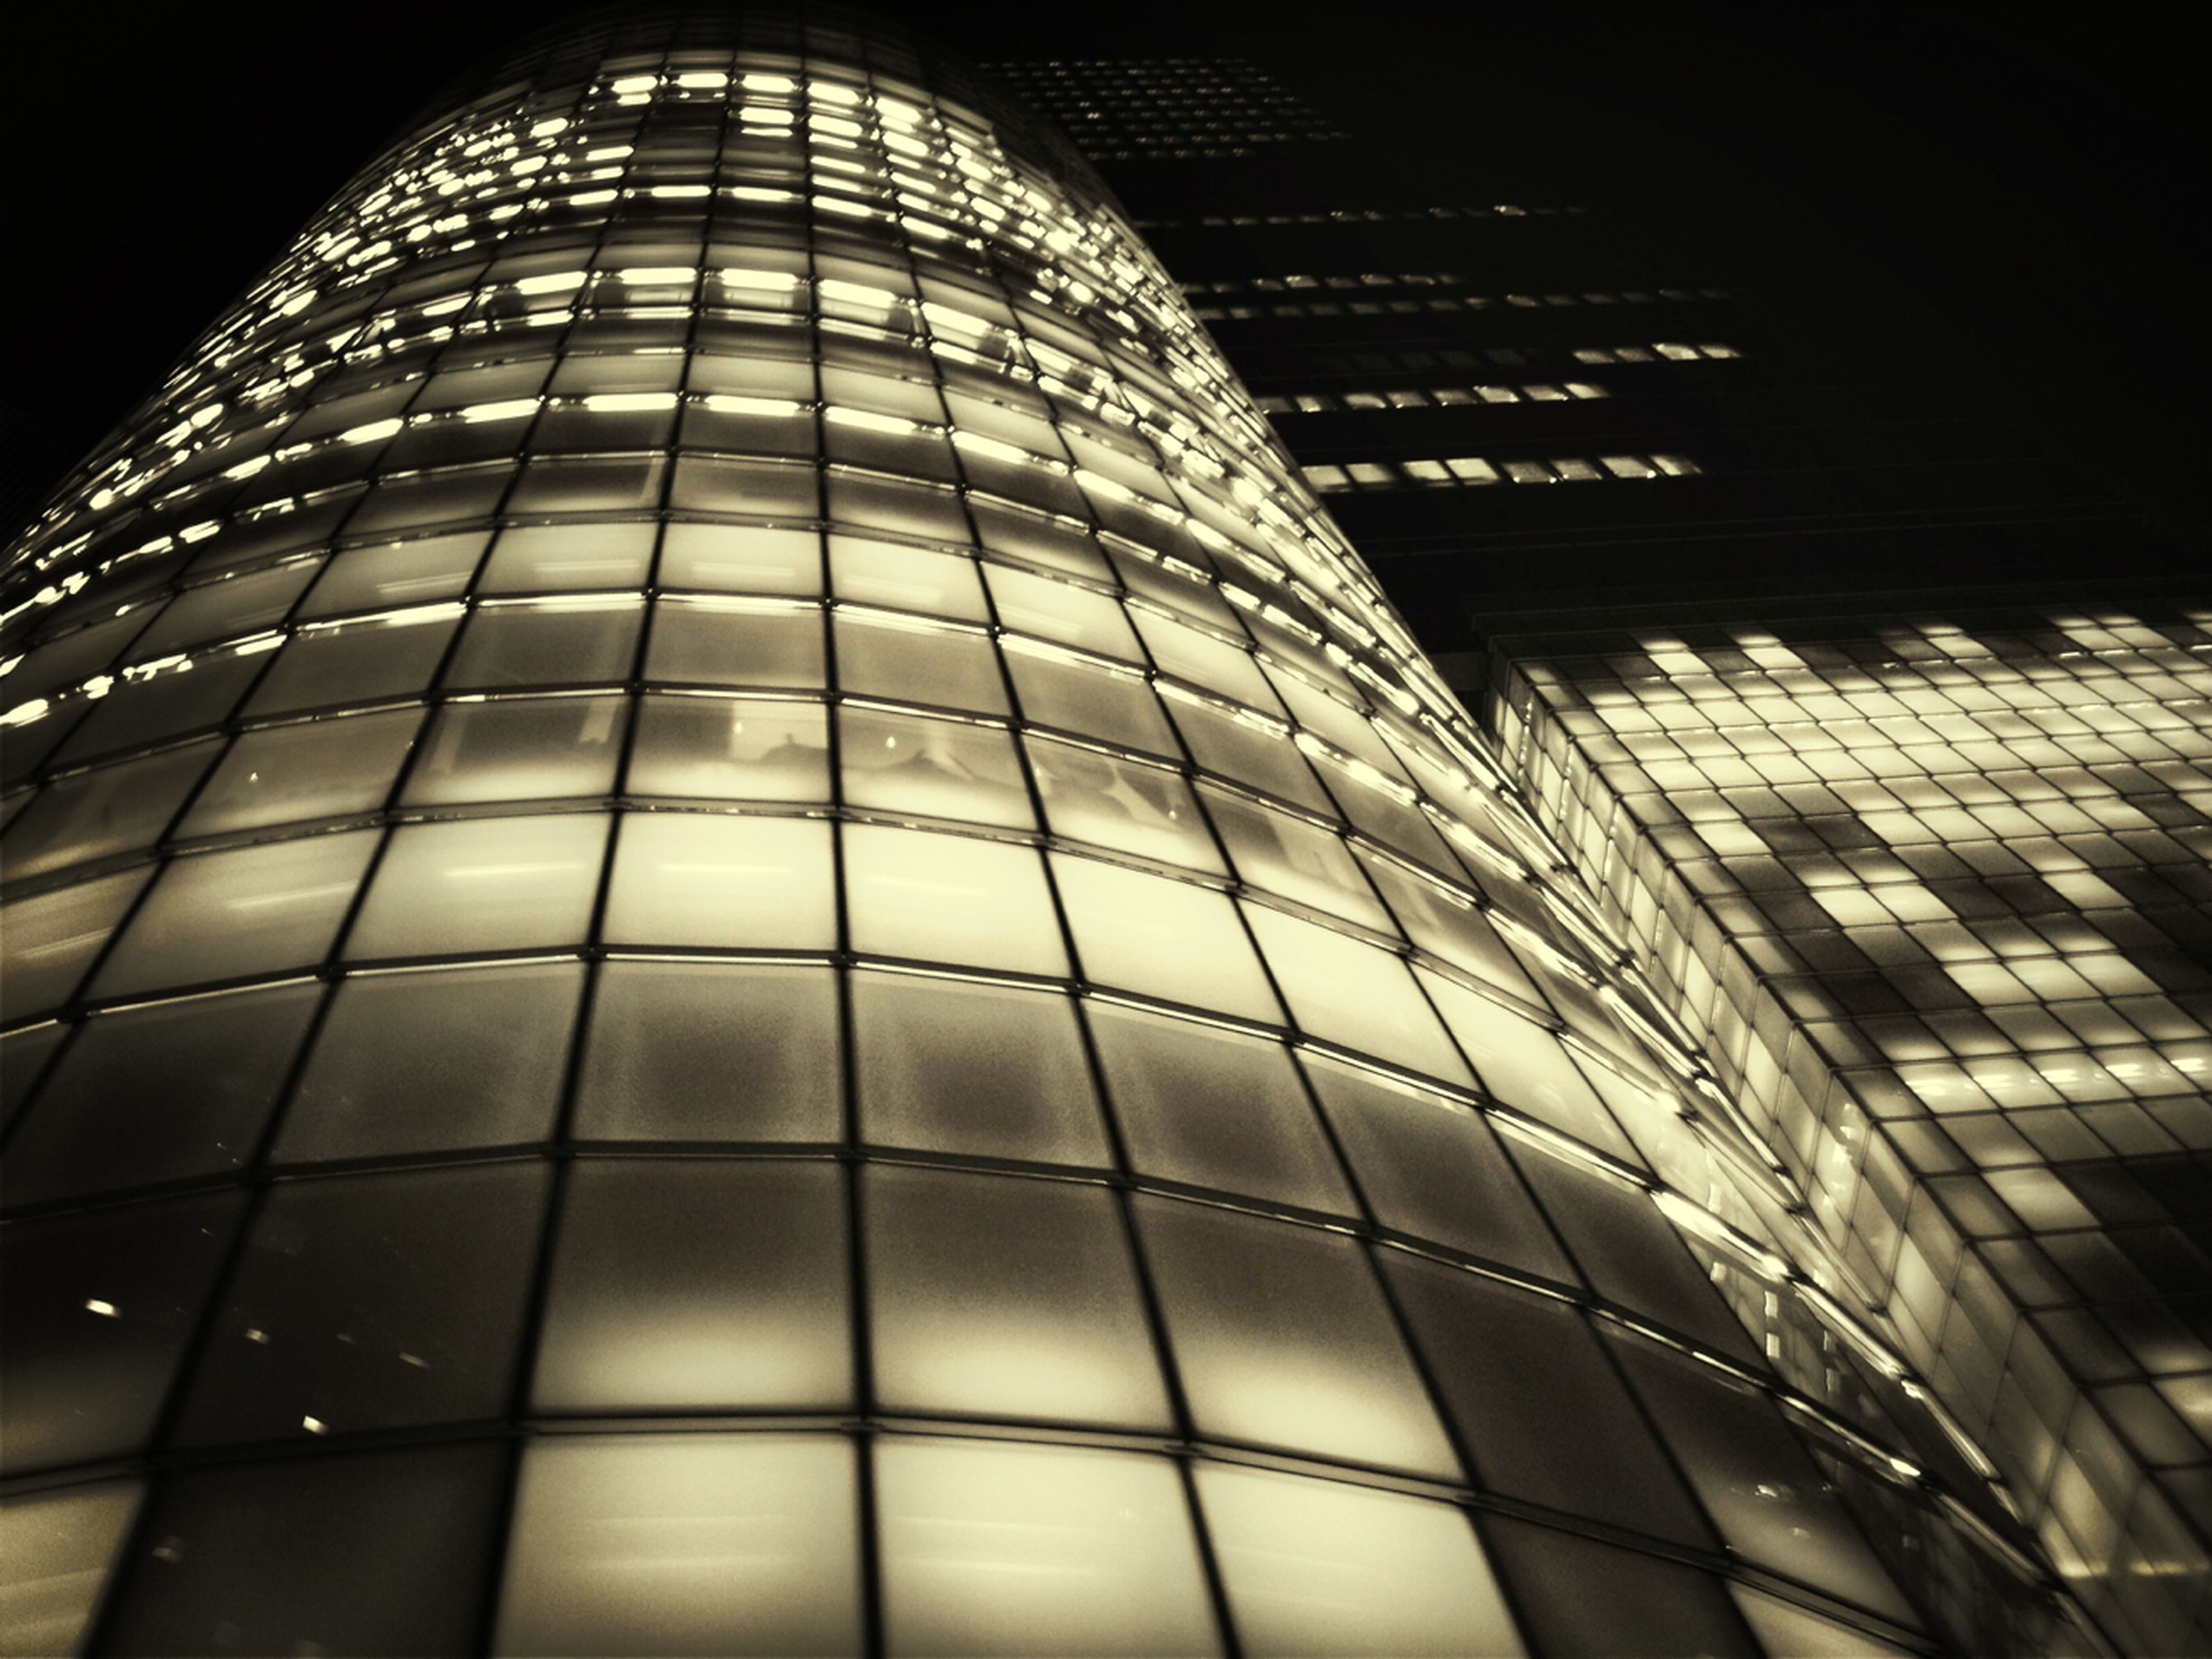 architecture, built structure, low angle view, modern, building exterior, office building, skyscraper, tall - high, city, night, illuminated, tower, glass - material, building, sky, reflection, pattern, architectural feature, no people, capital cities